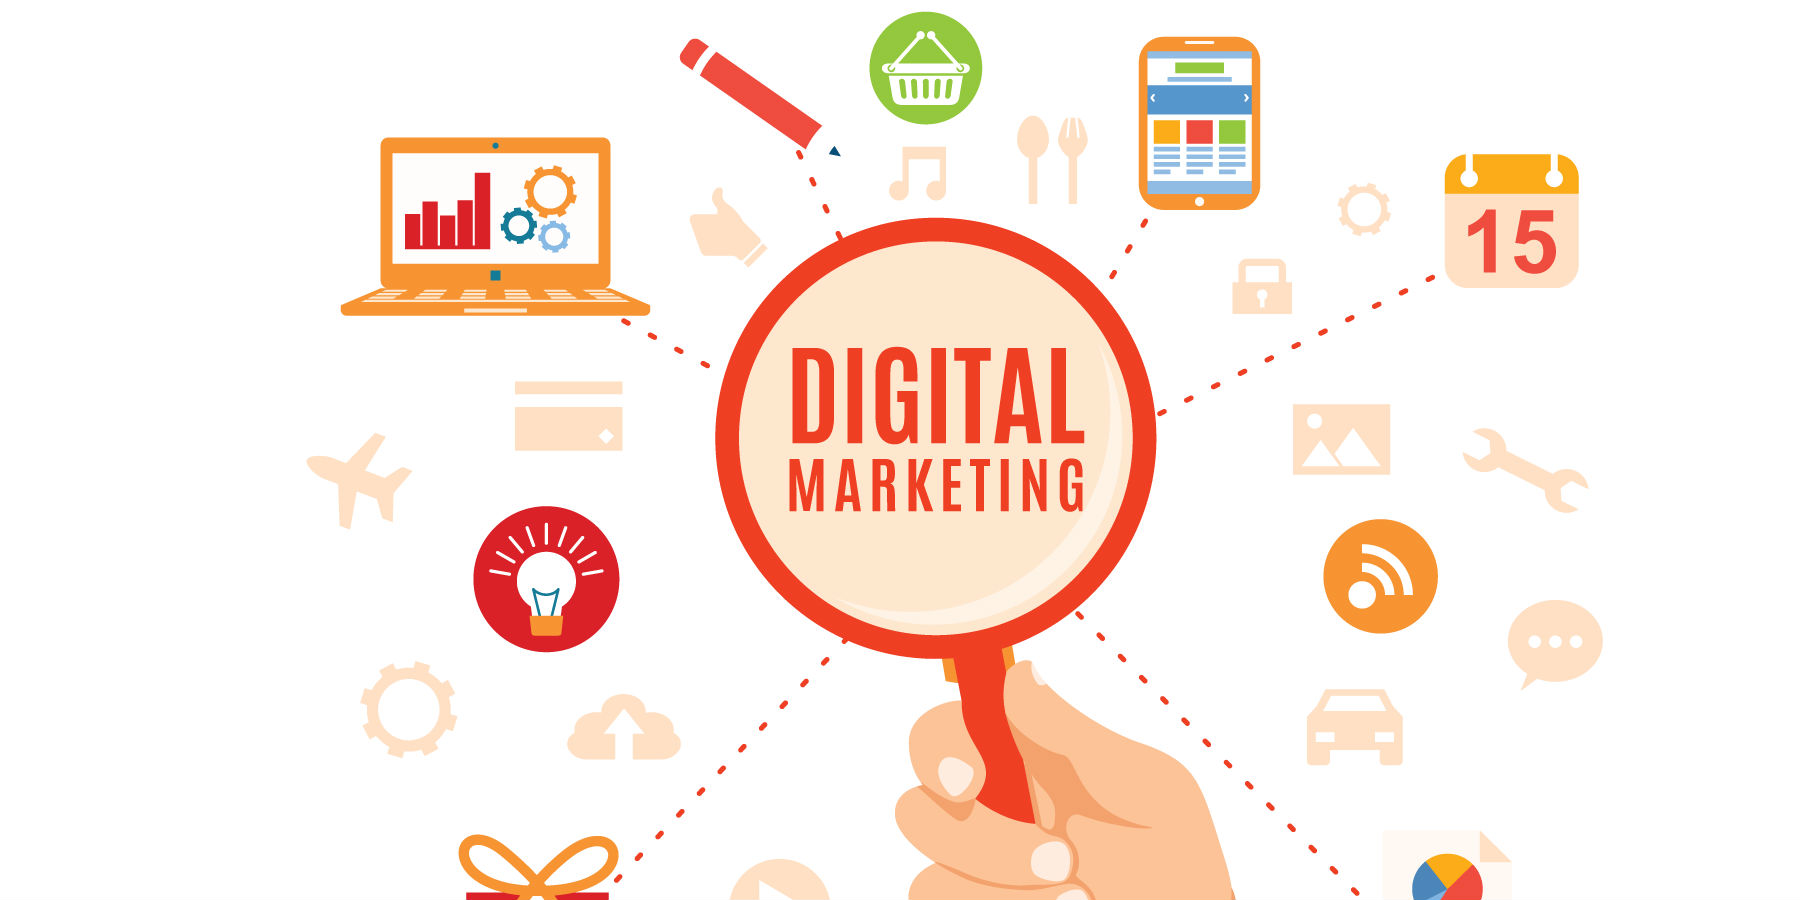 Digital marketing has a massive advantage over the traditional marketing methods; earlier advertisements